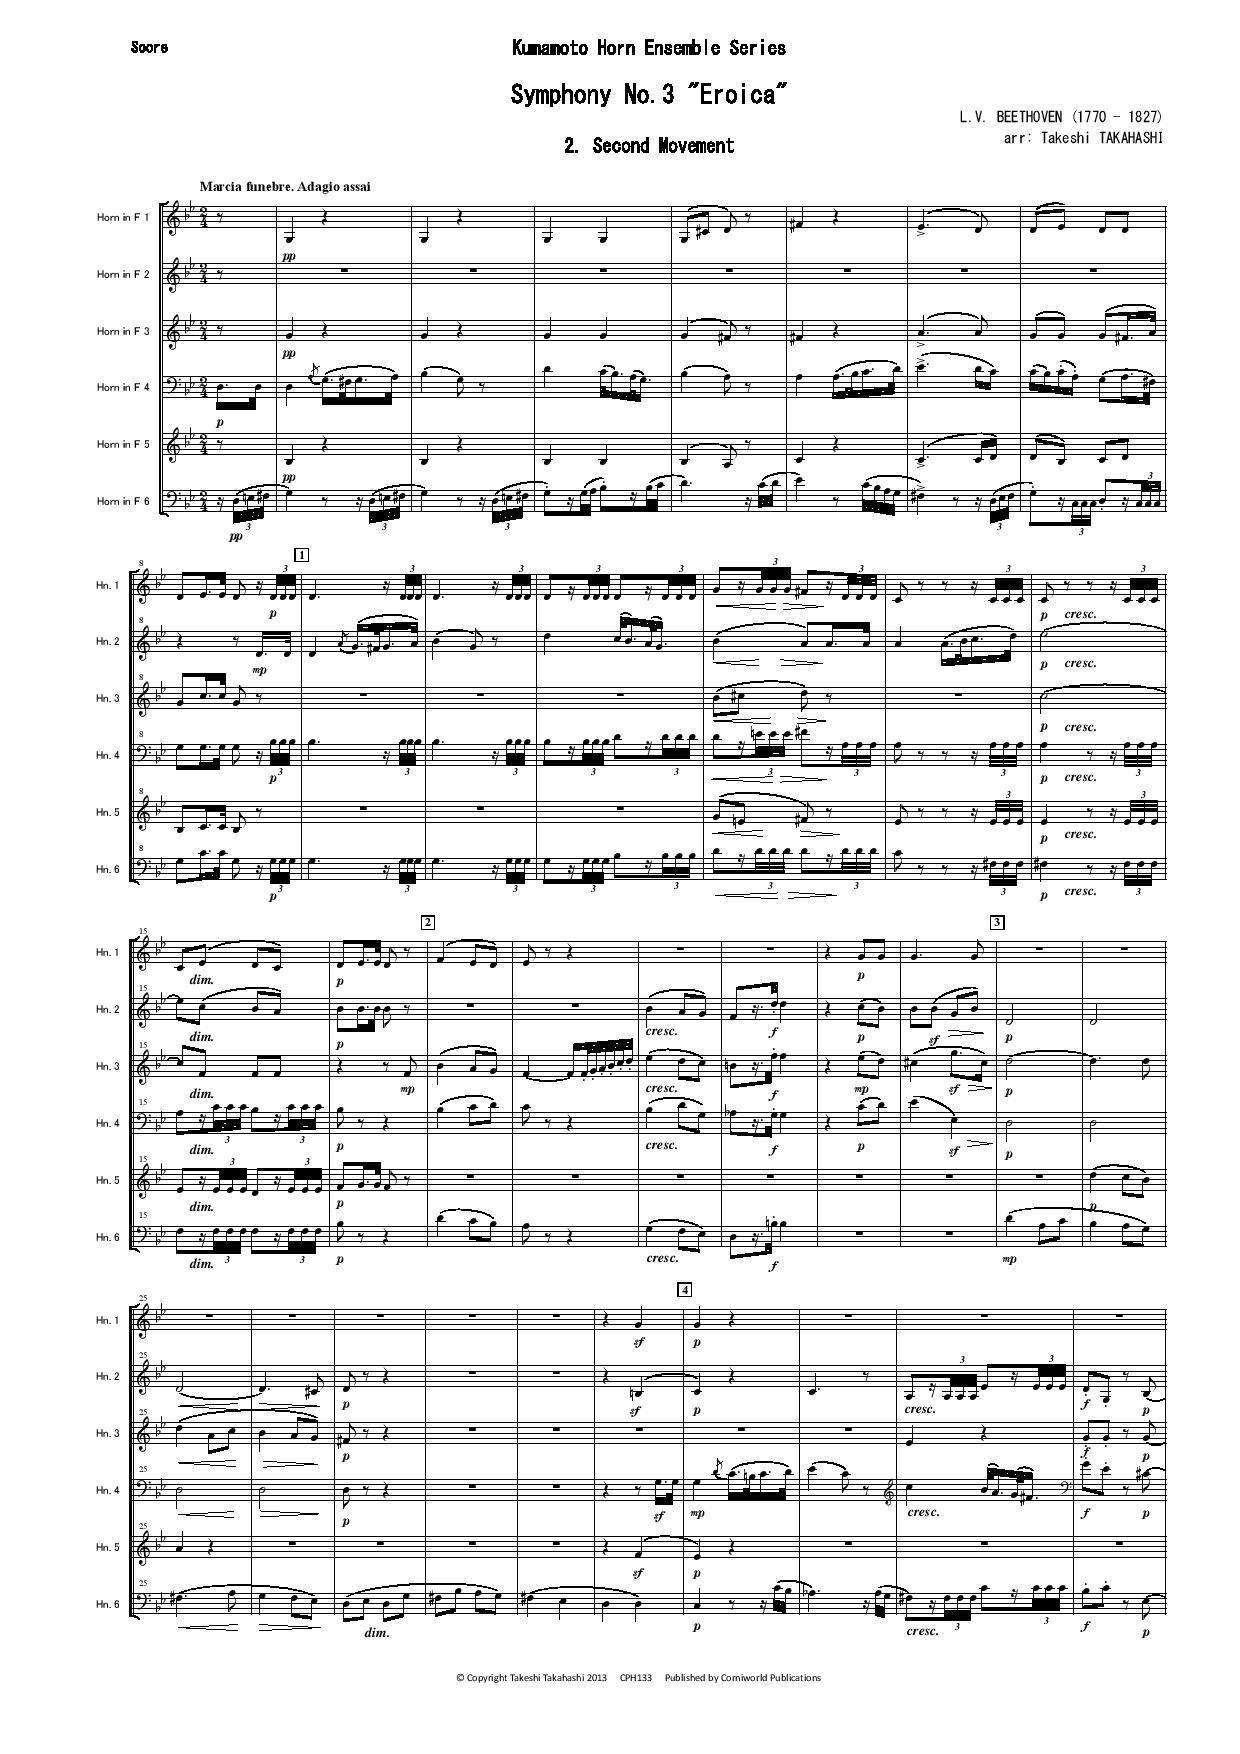 2nd Mvt from Symphony No 3 (Beethoven)